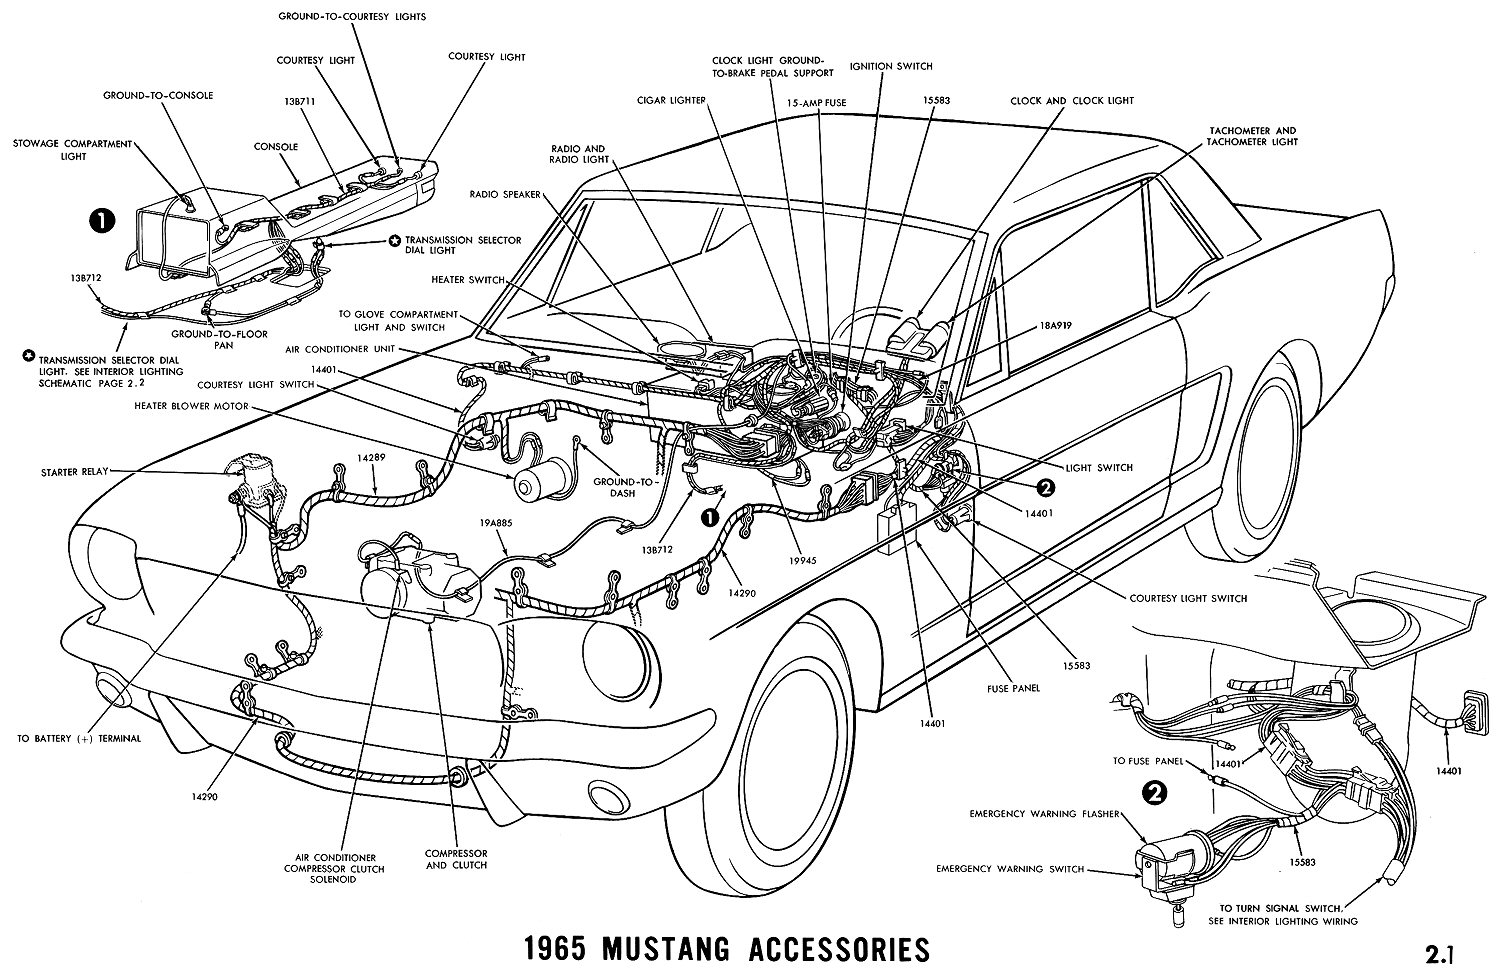 65 mustang accesories 1965 mustang accesories diagram 68 mustang fuse box diagram at virtualis.co